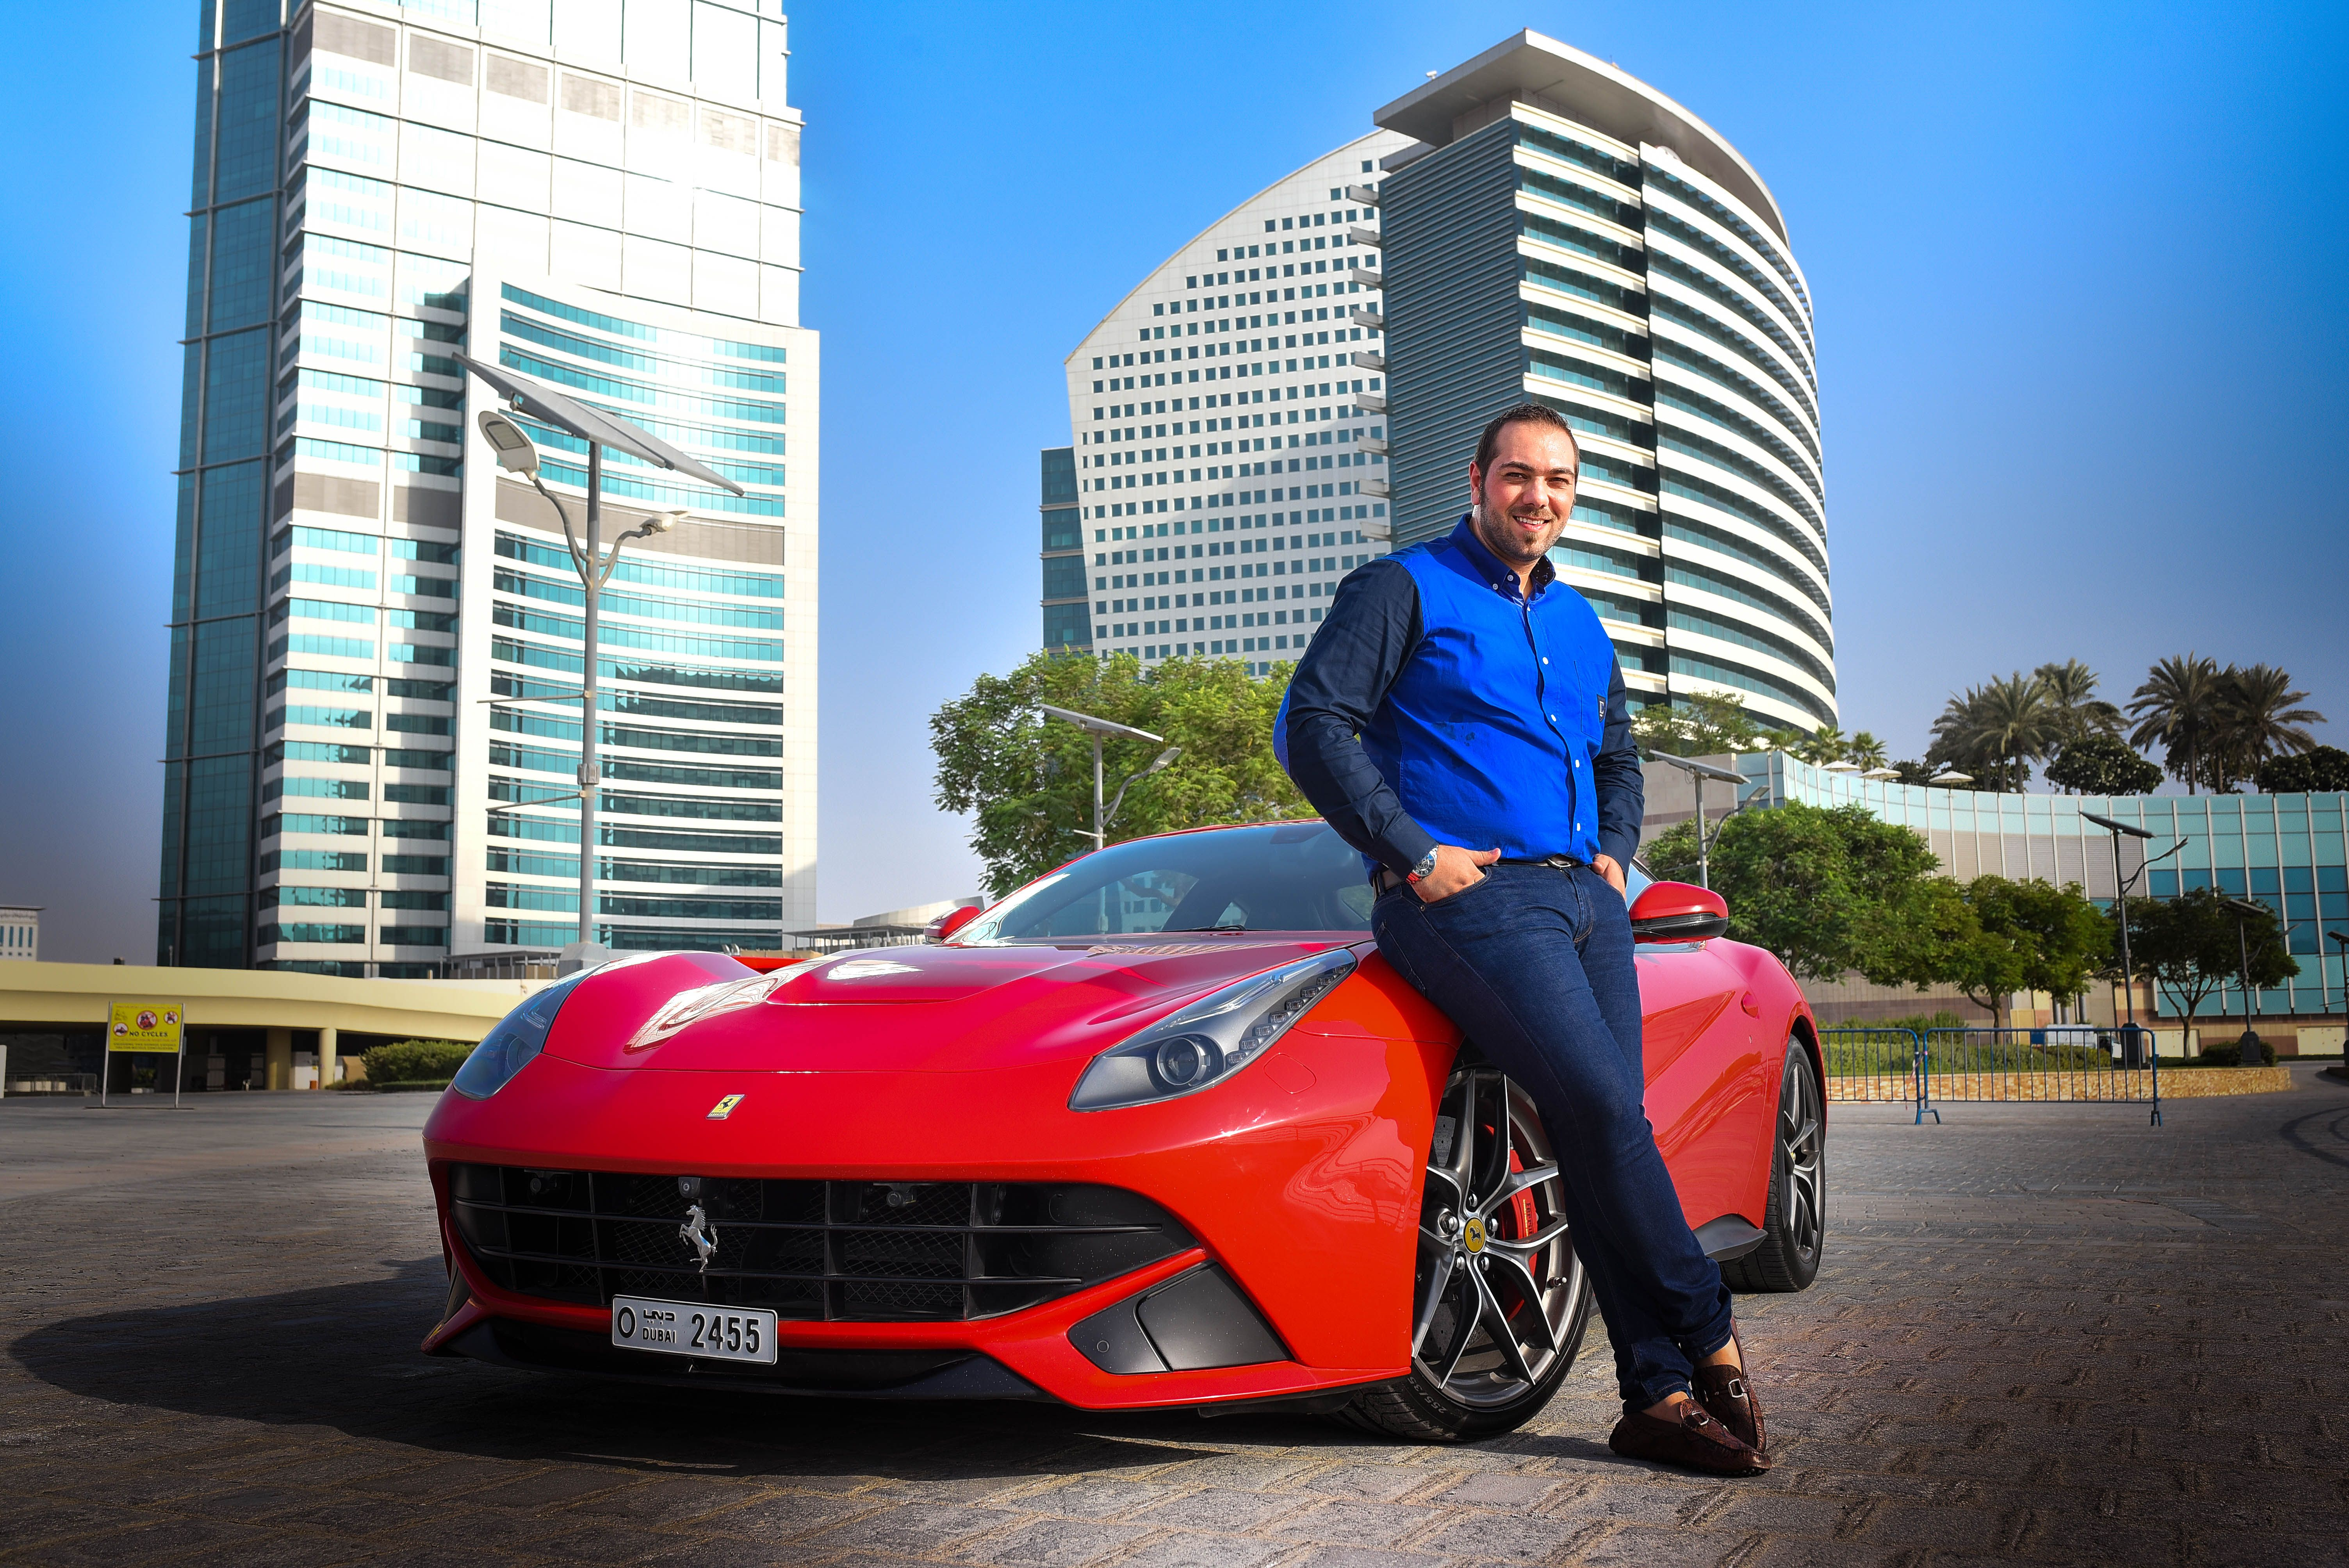 The Ferrari F12 For Rent Is Available In Be Vip Luxury Sport Car Rental In Dubai An Exciting New Addition To Bevip F Sports Car Sports Car Rental Ferrari F12